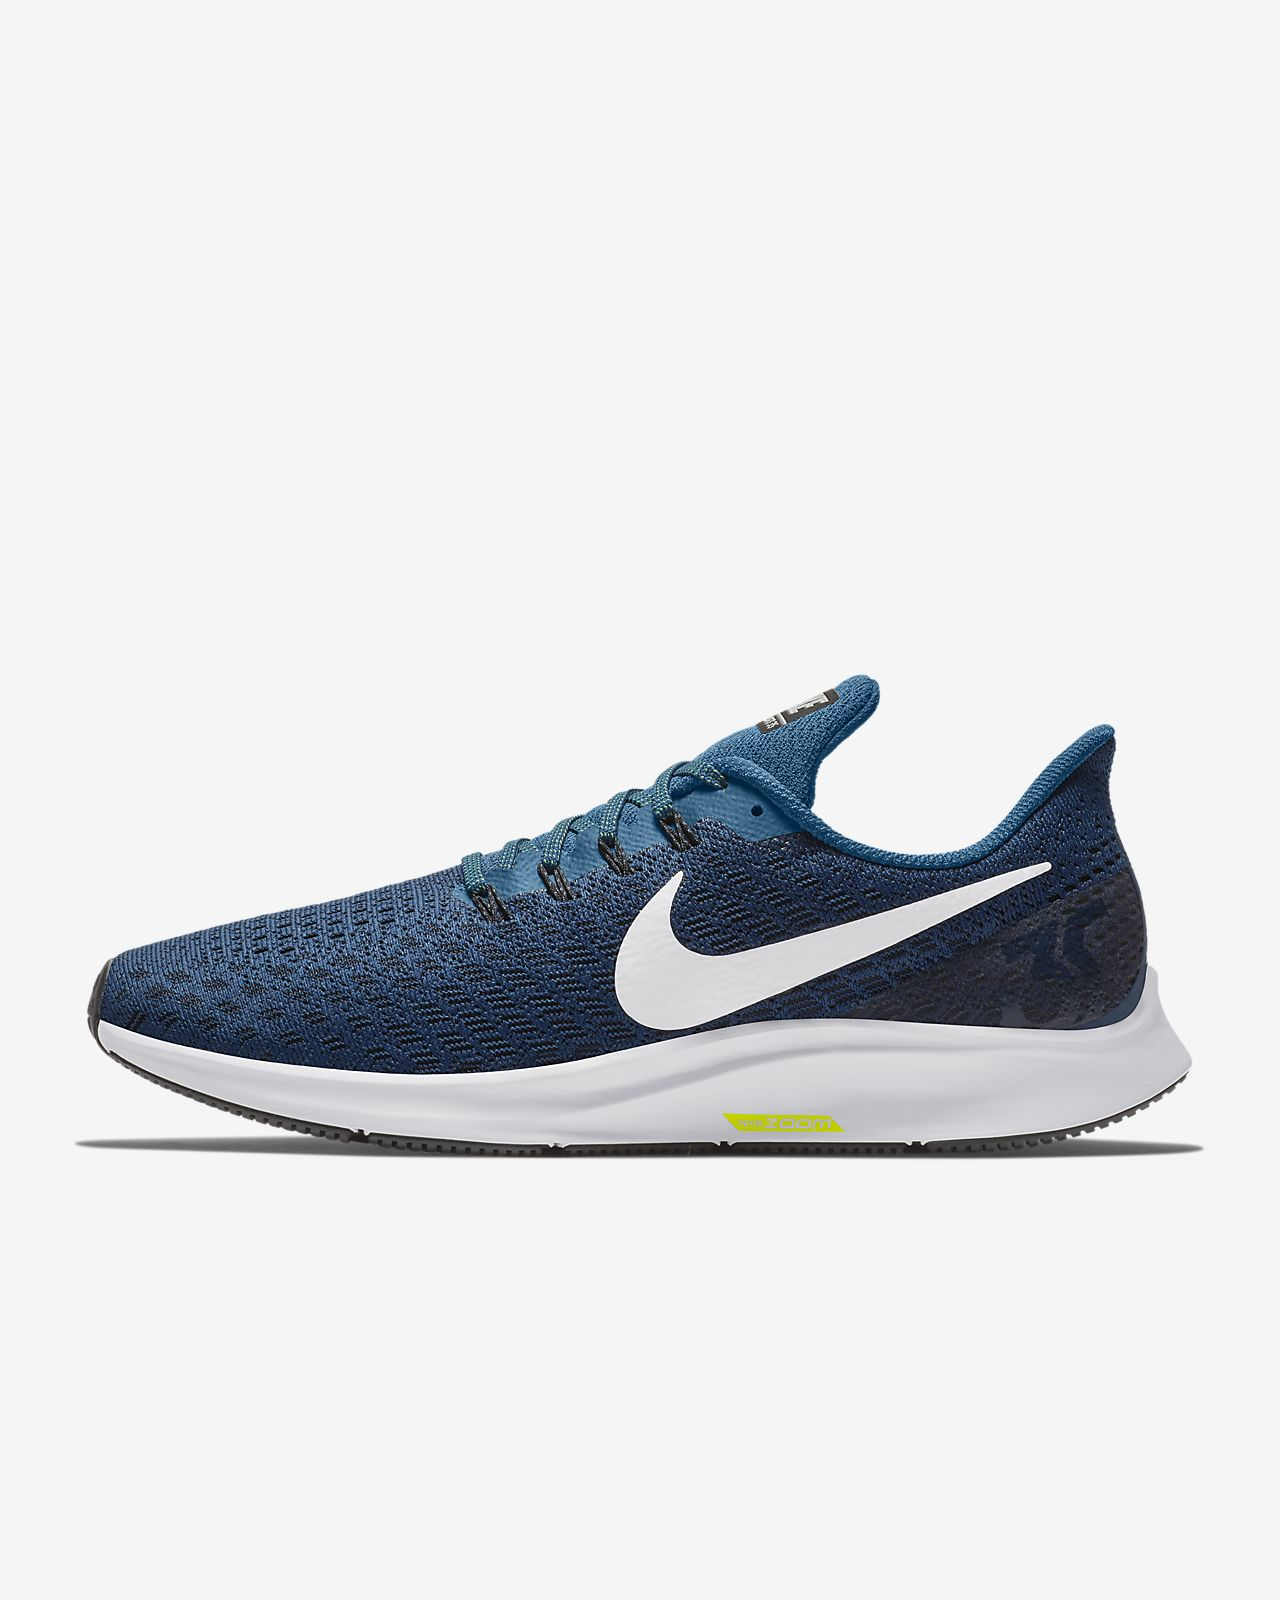 b1da82674515 Nike Air Zoom Pegasus 35 Men s Running Shoe. Nike.com NL